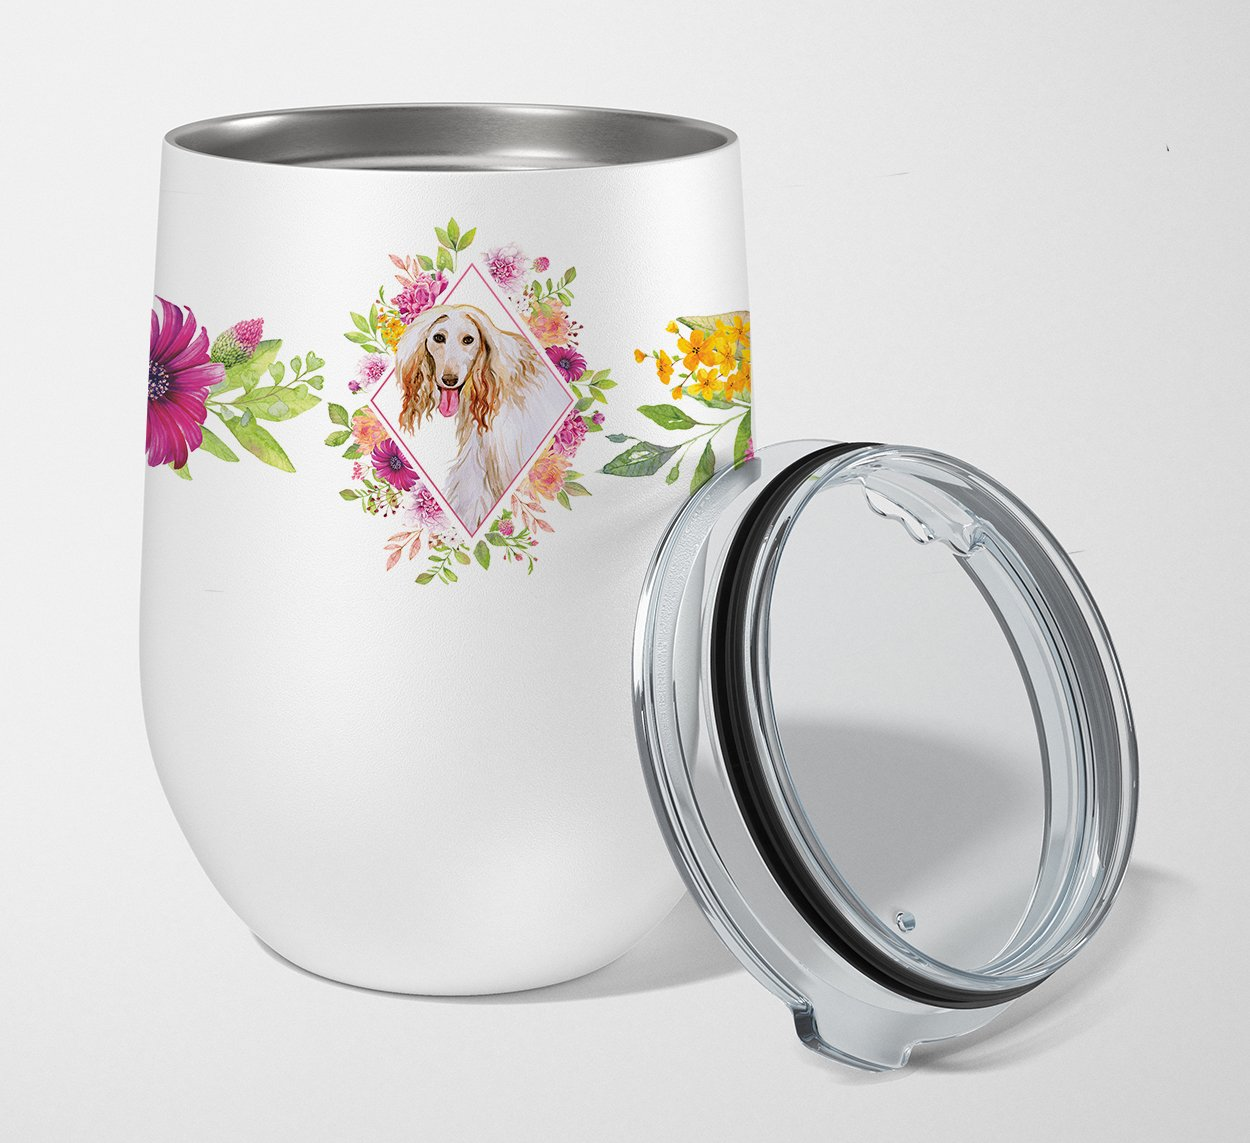 Afghan Hound Pink Flowers Stainless Steel 12 oz Stemless Wine Glass CK4110TBL12 by Caroline's Treasures